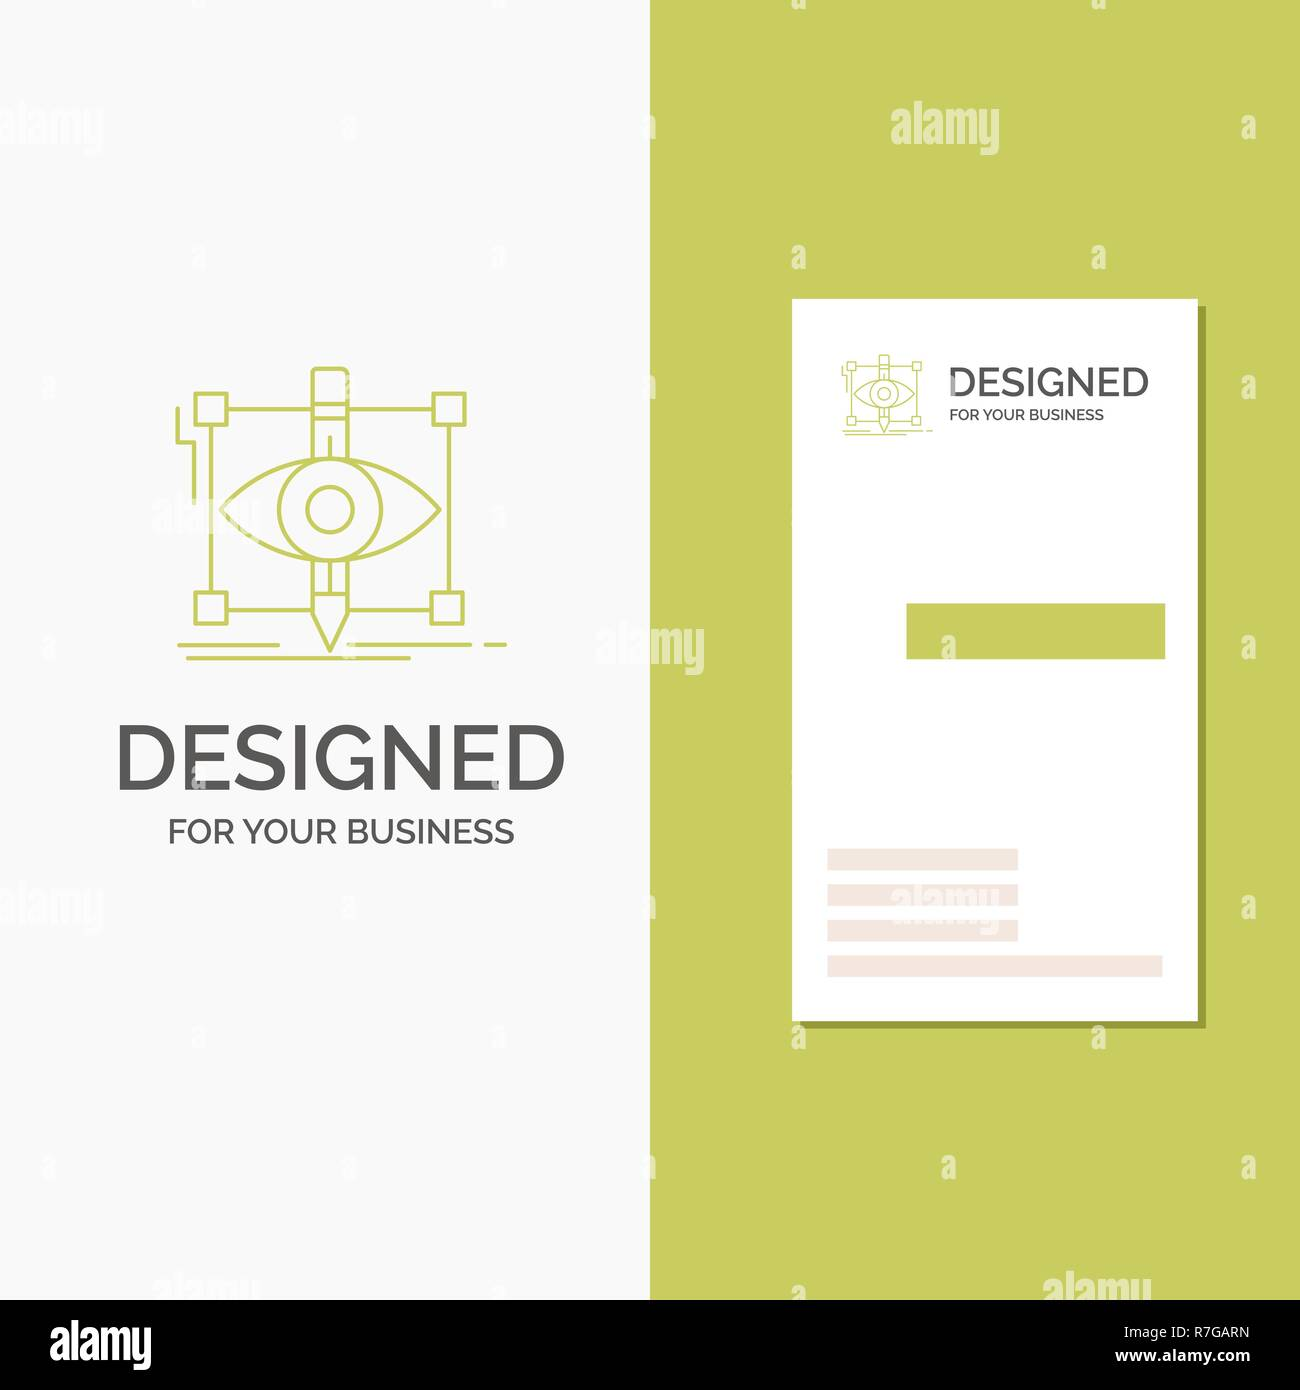 Business Logo for design, draft, sketch, sketching, visual. Vertical Green Business / Visiting Card template. Creative background vector illustration - Stock Image